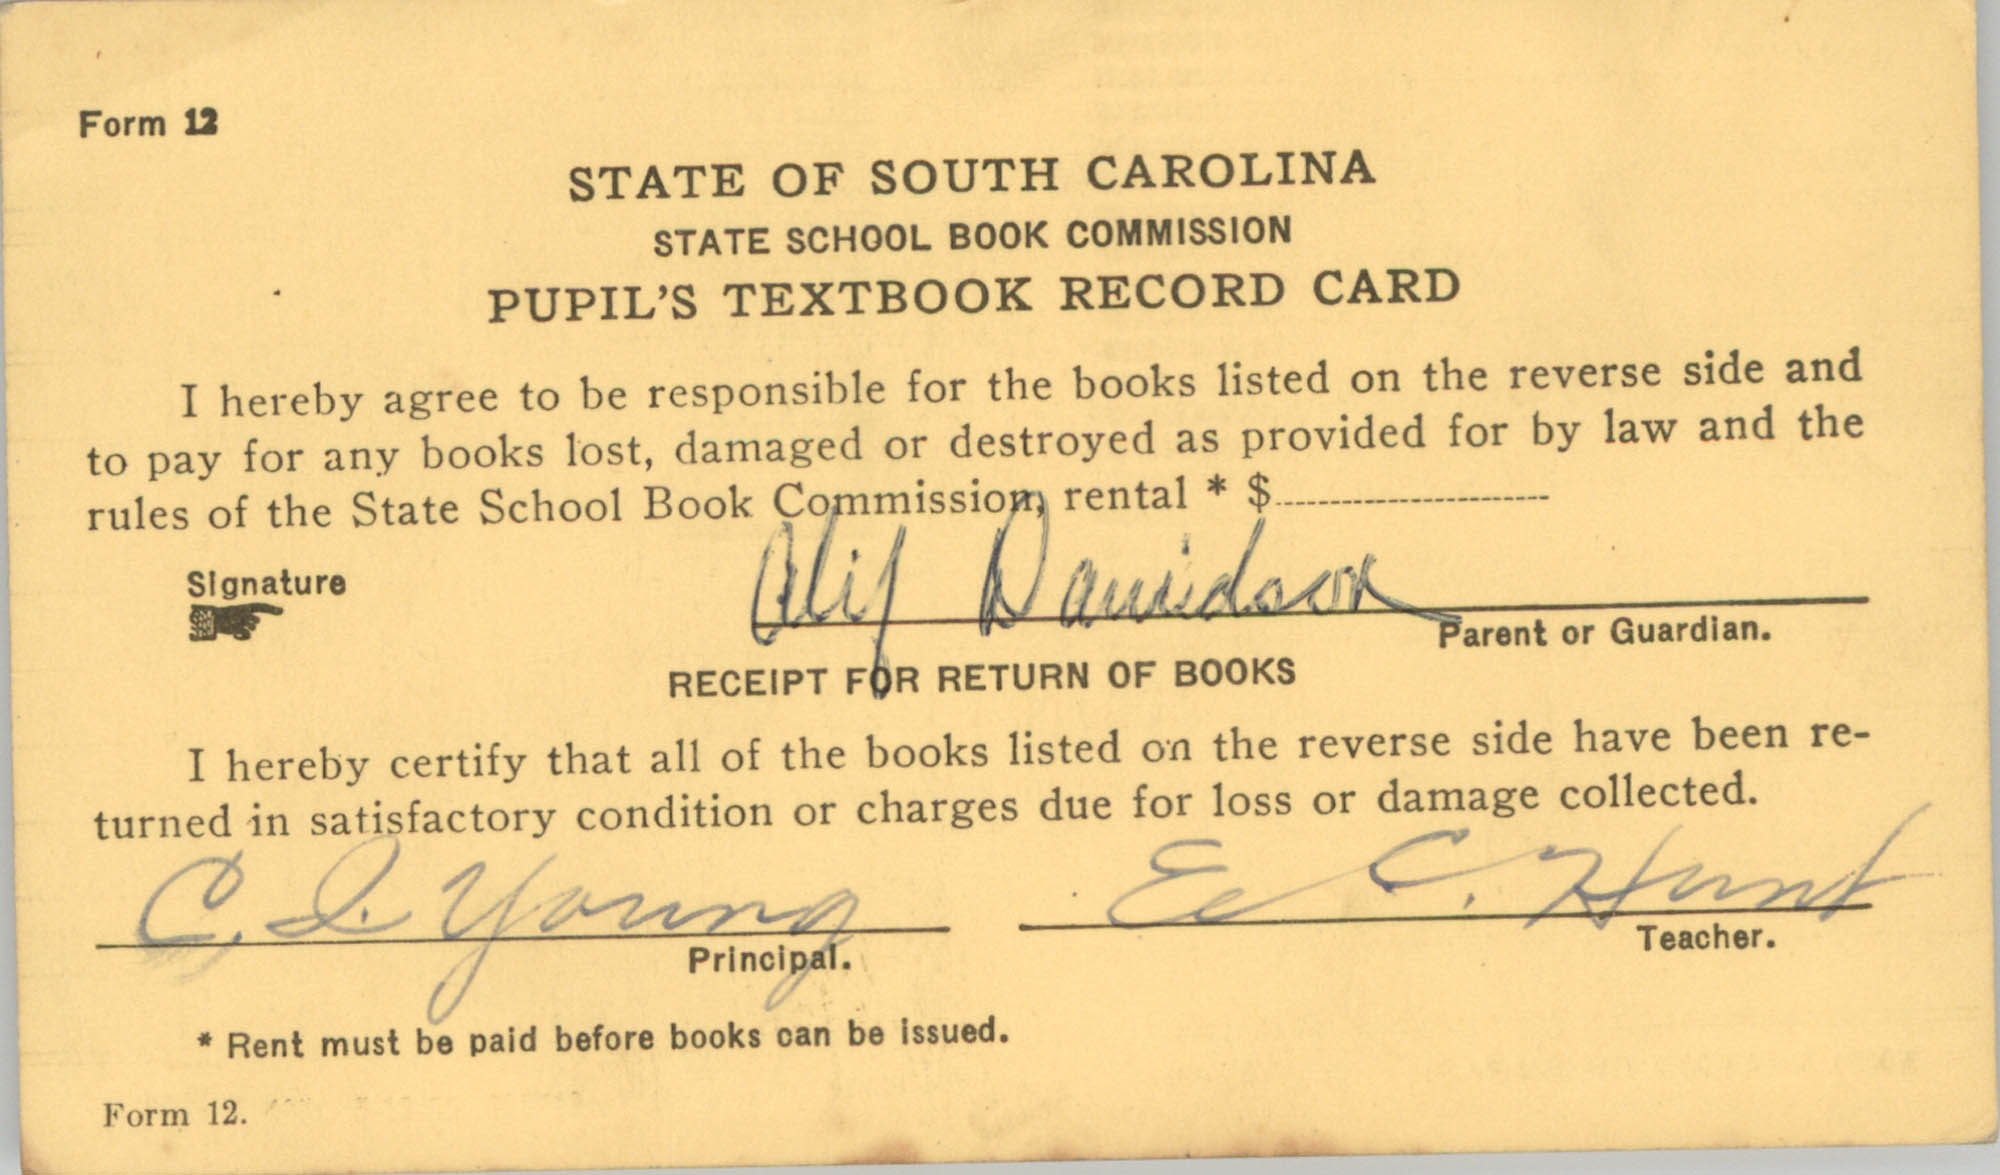 State of South Carolina State School Book Commission Pupil's Textbook Record Cards